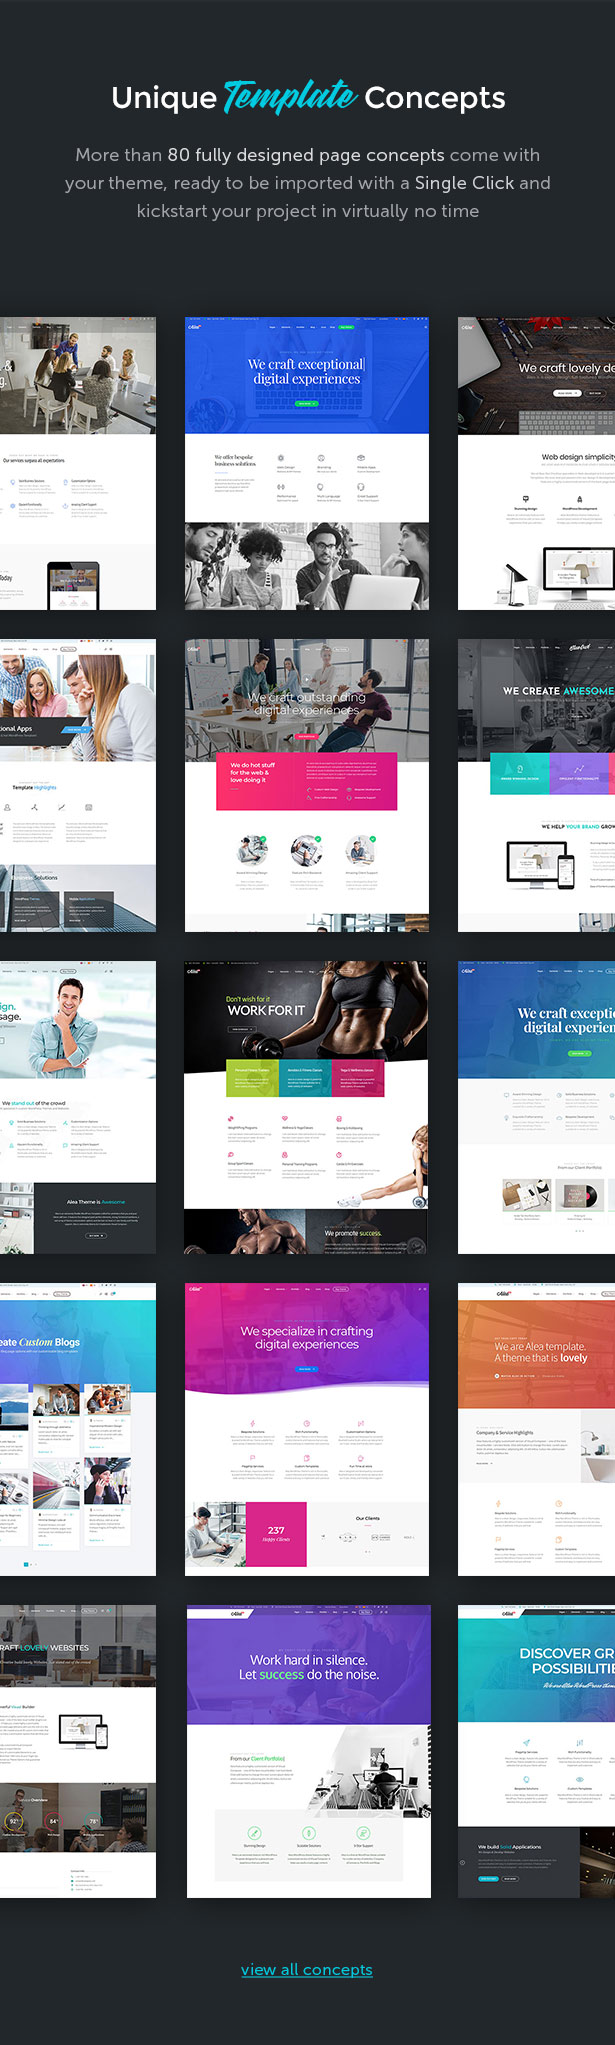 Alea - Business Multipurpose WordPress Theme - 4